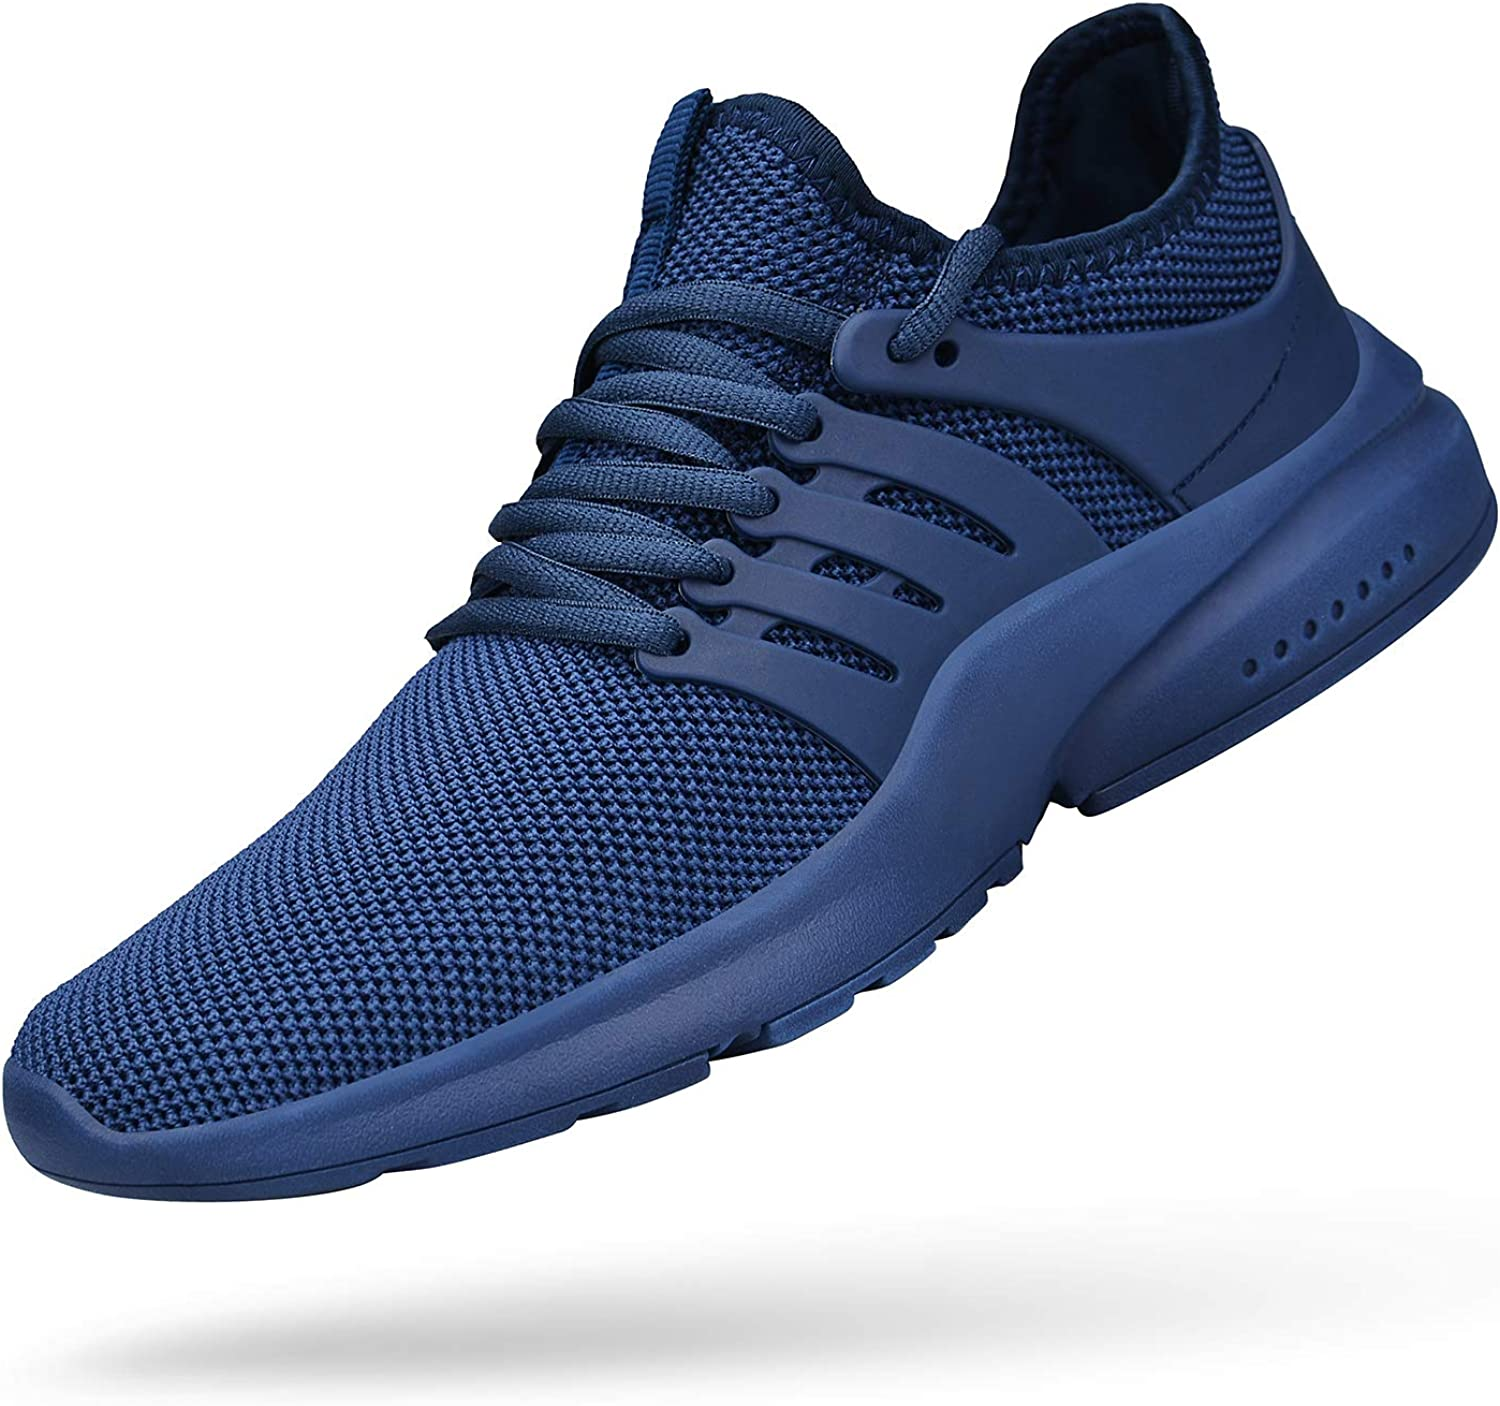 ZOCAVIA Men's Running shoes Lightweight Breathable Fashion Sneakers Tennis shoes